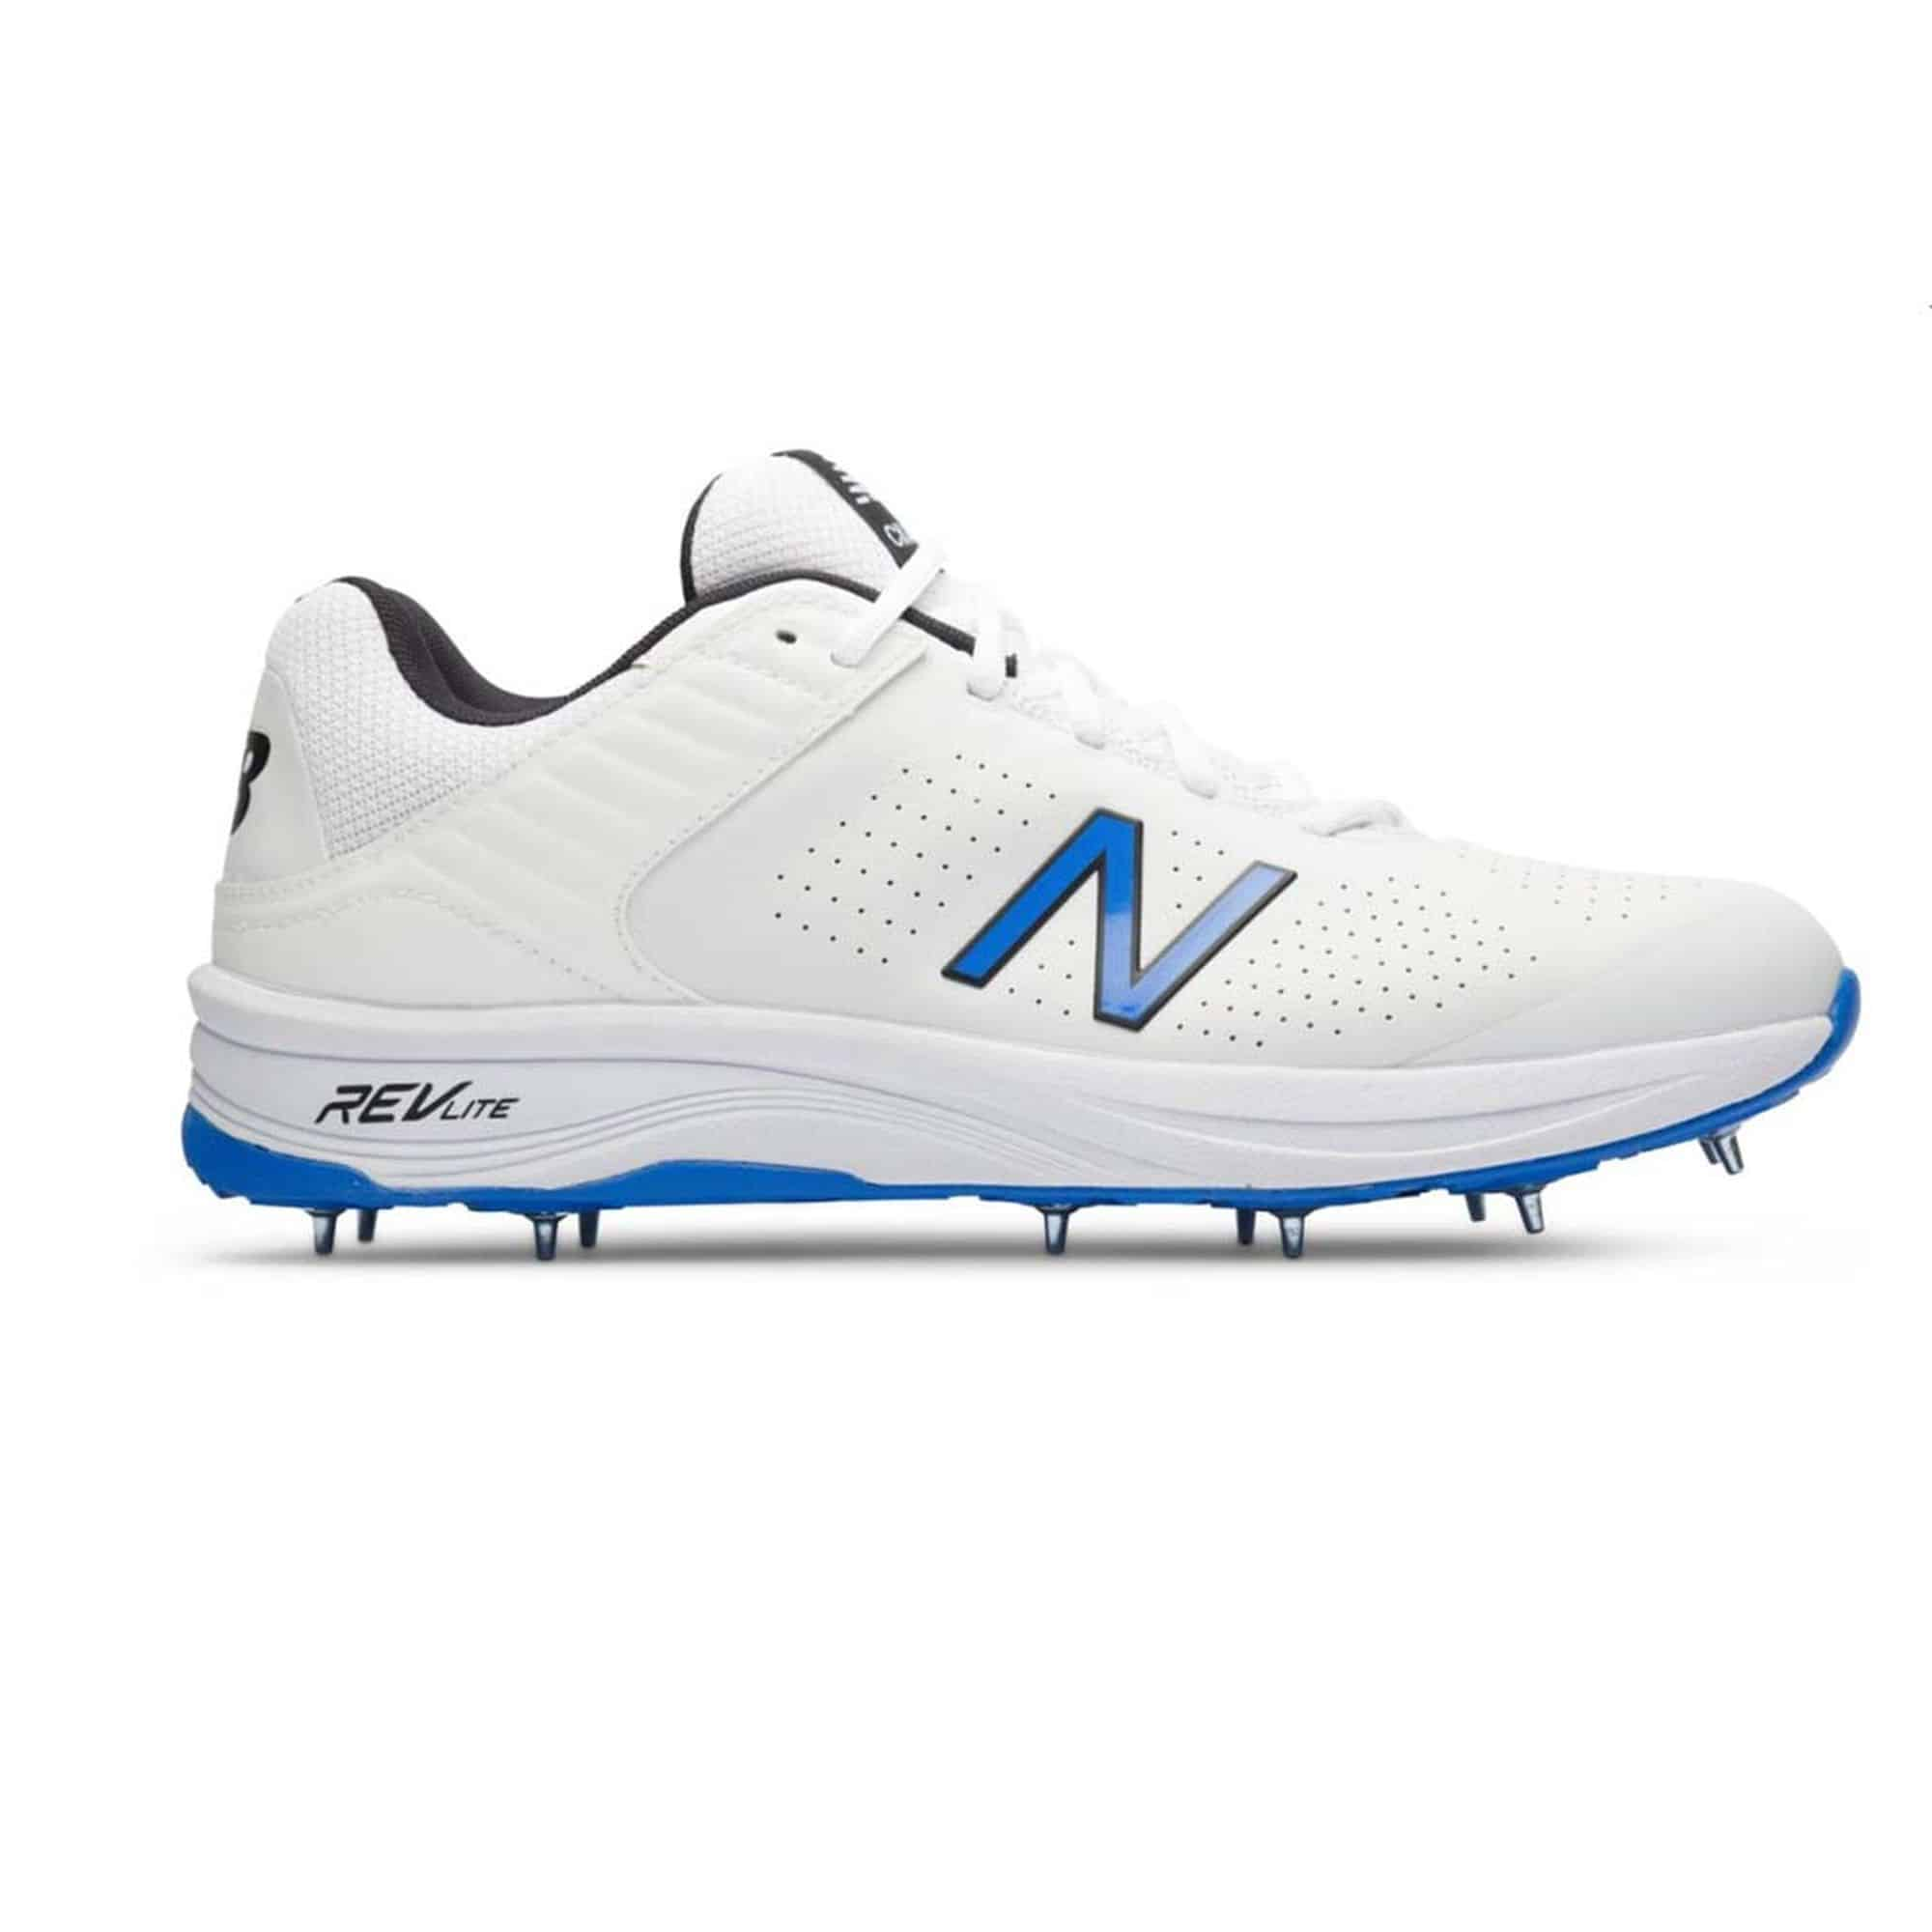 New Balance CK 4030 L3 Spiked Shoe